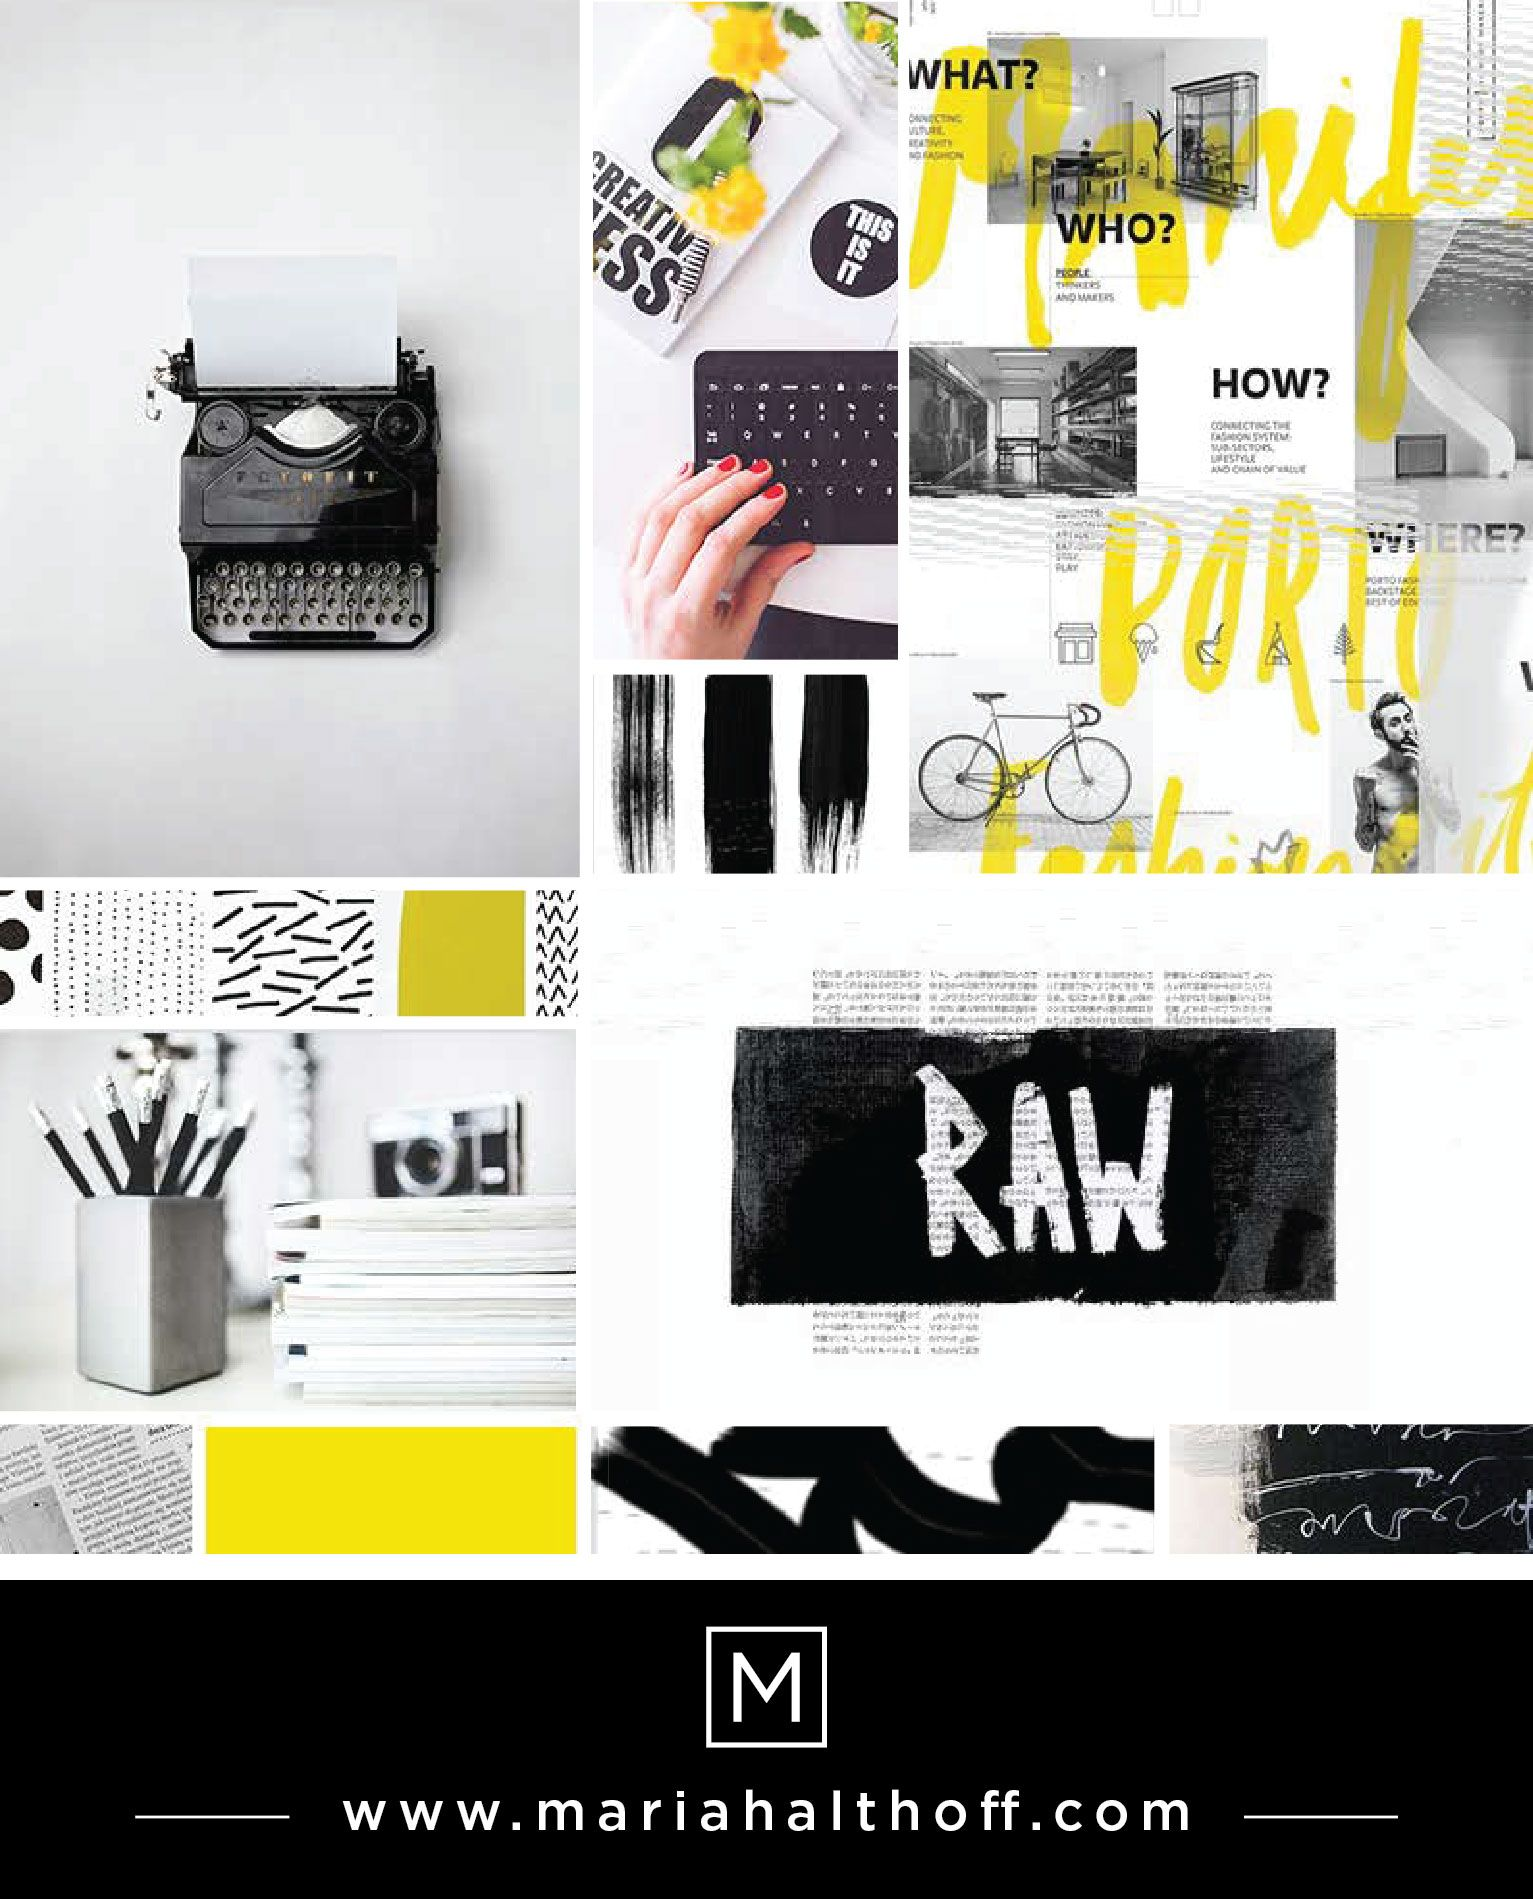 Paint, messy, dynamic, scribbles, writing, black, white and yellow mood